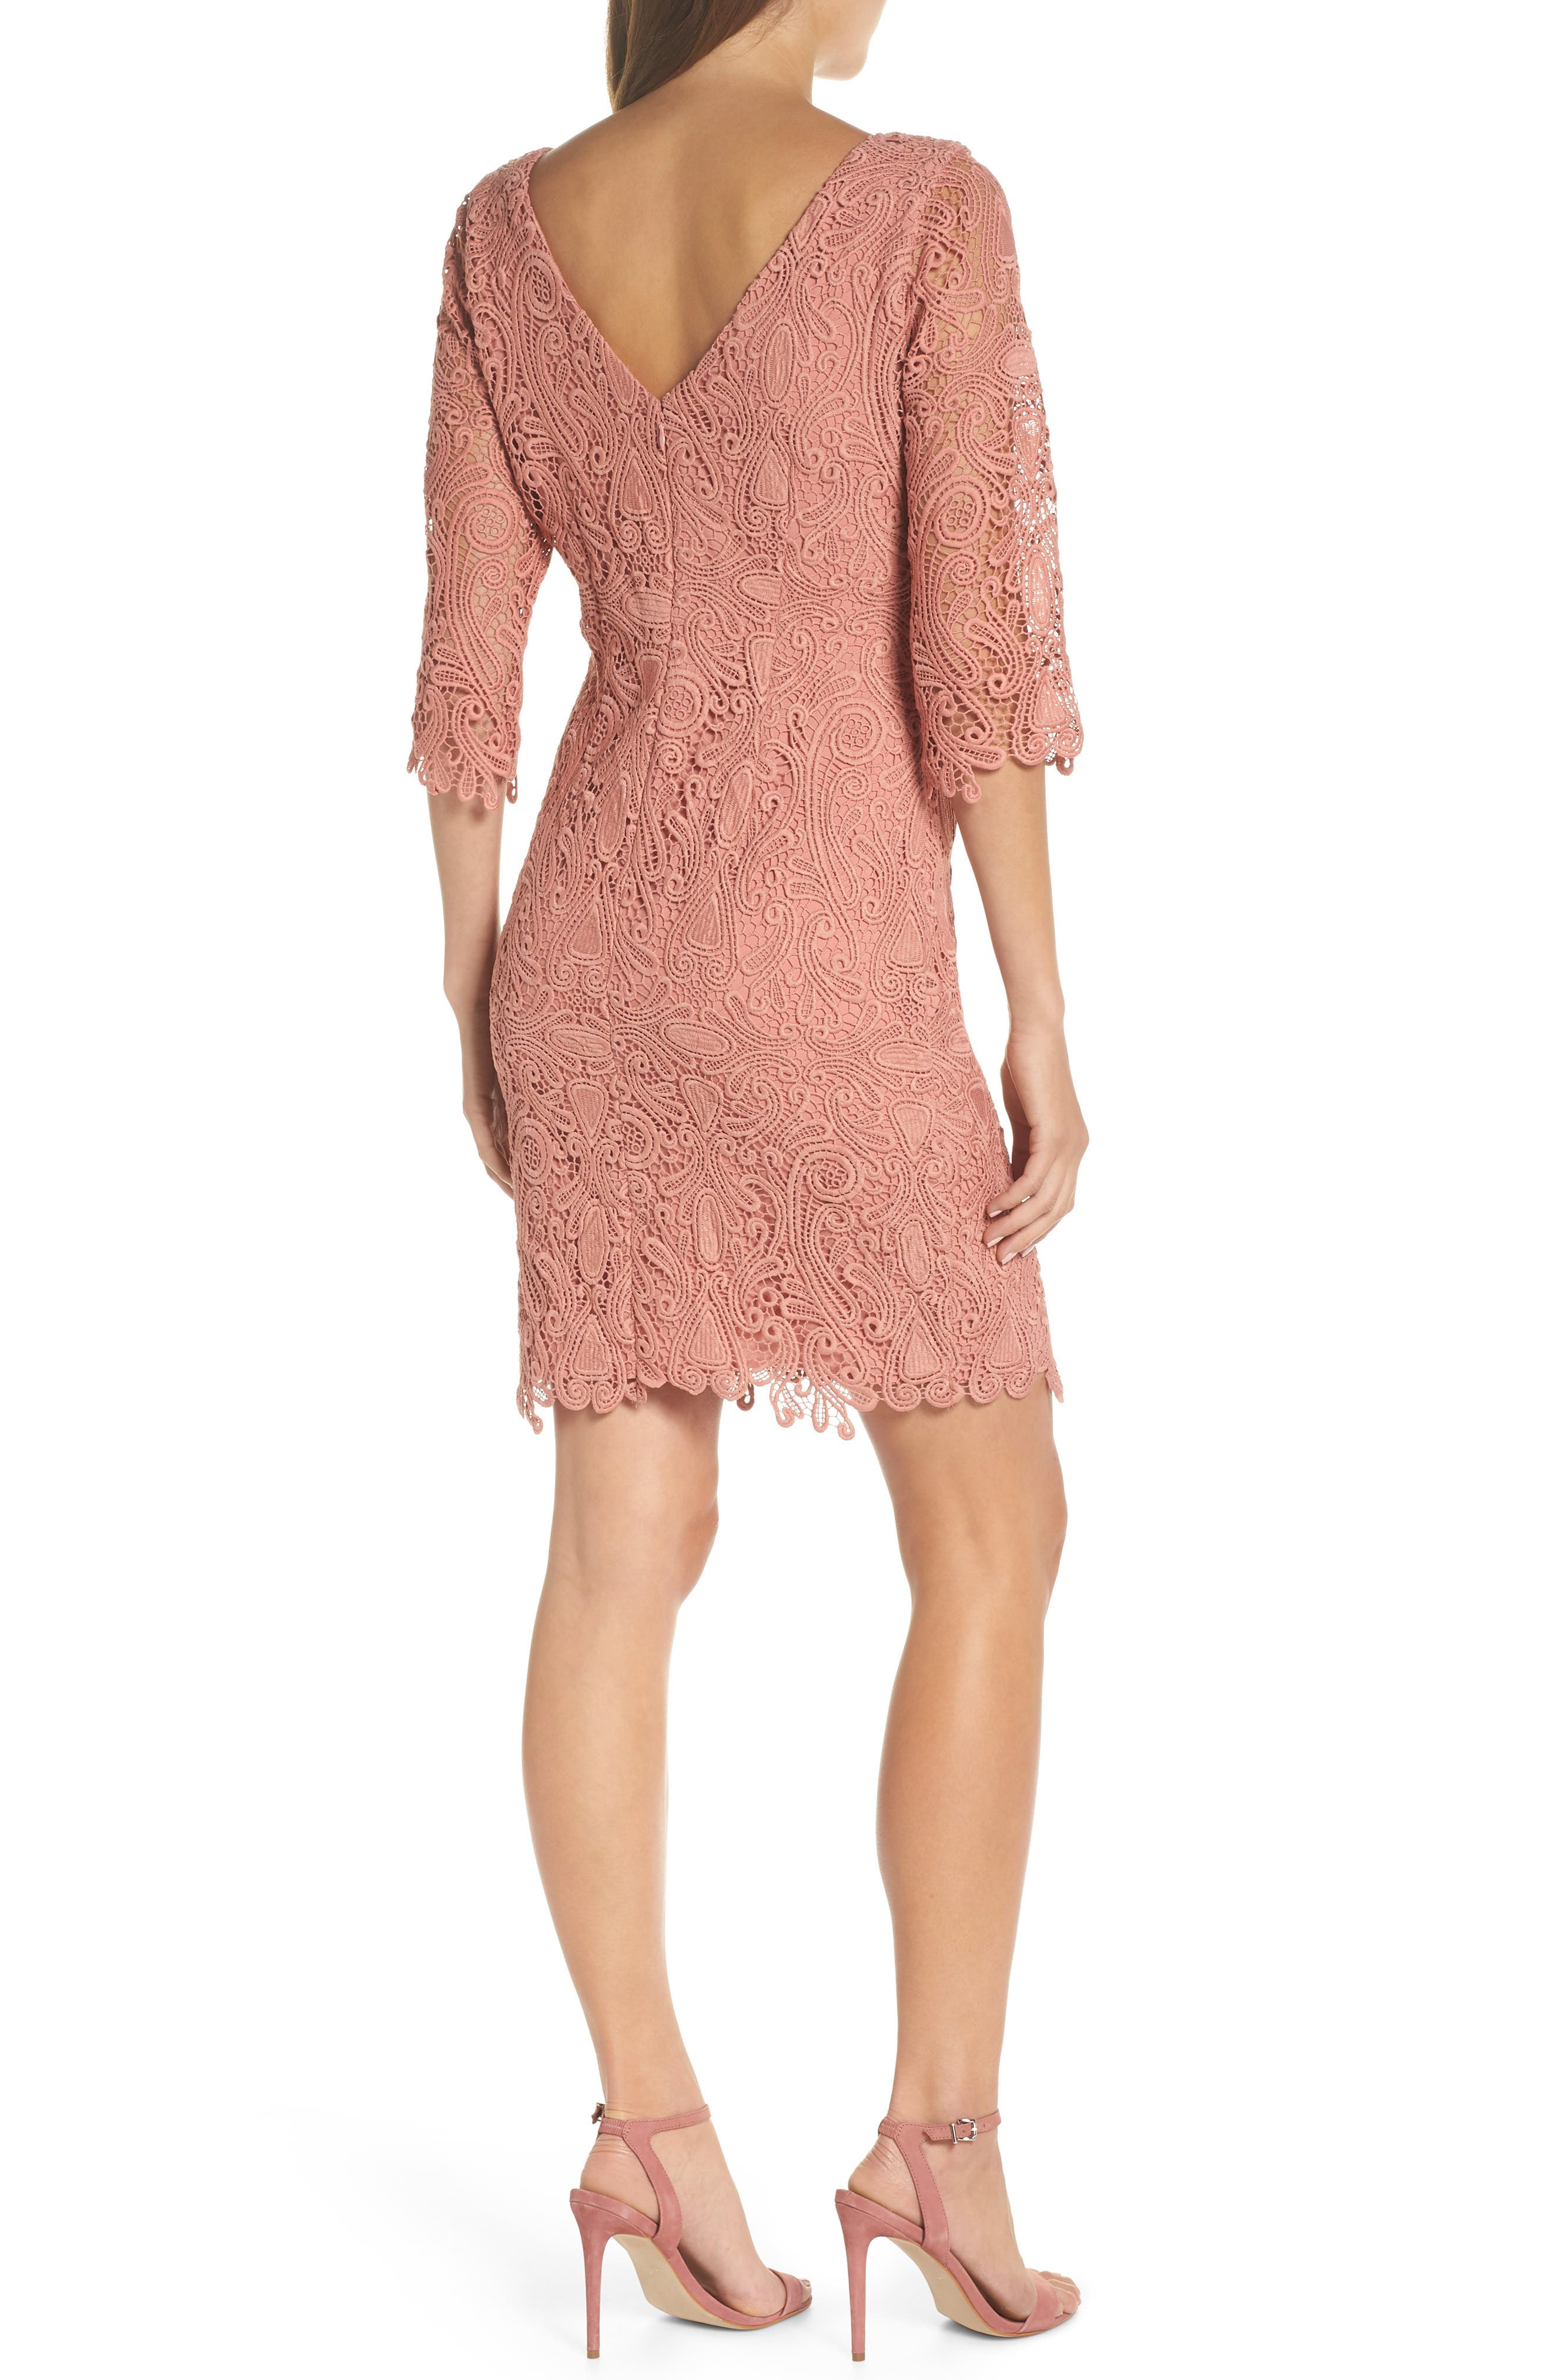 Lace Sheath Dress,                             Alternate thumbnail 2, color,                             951